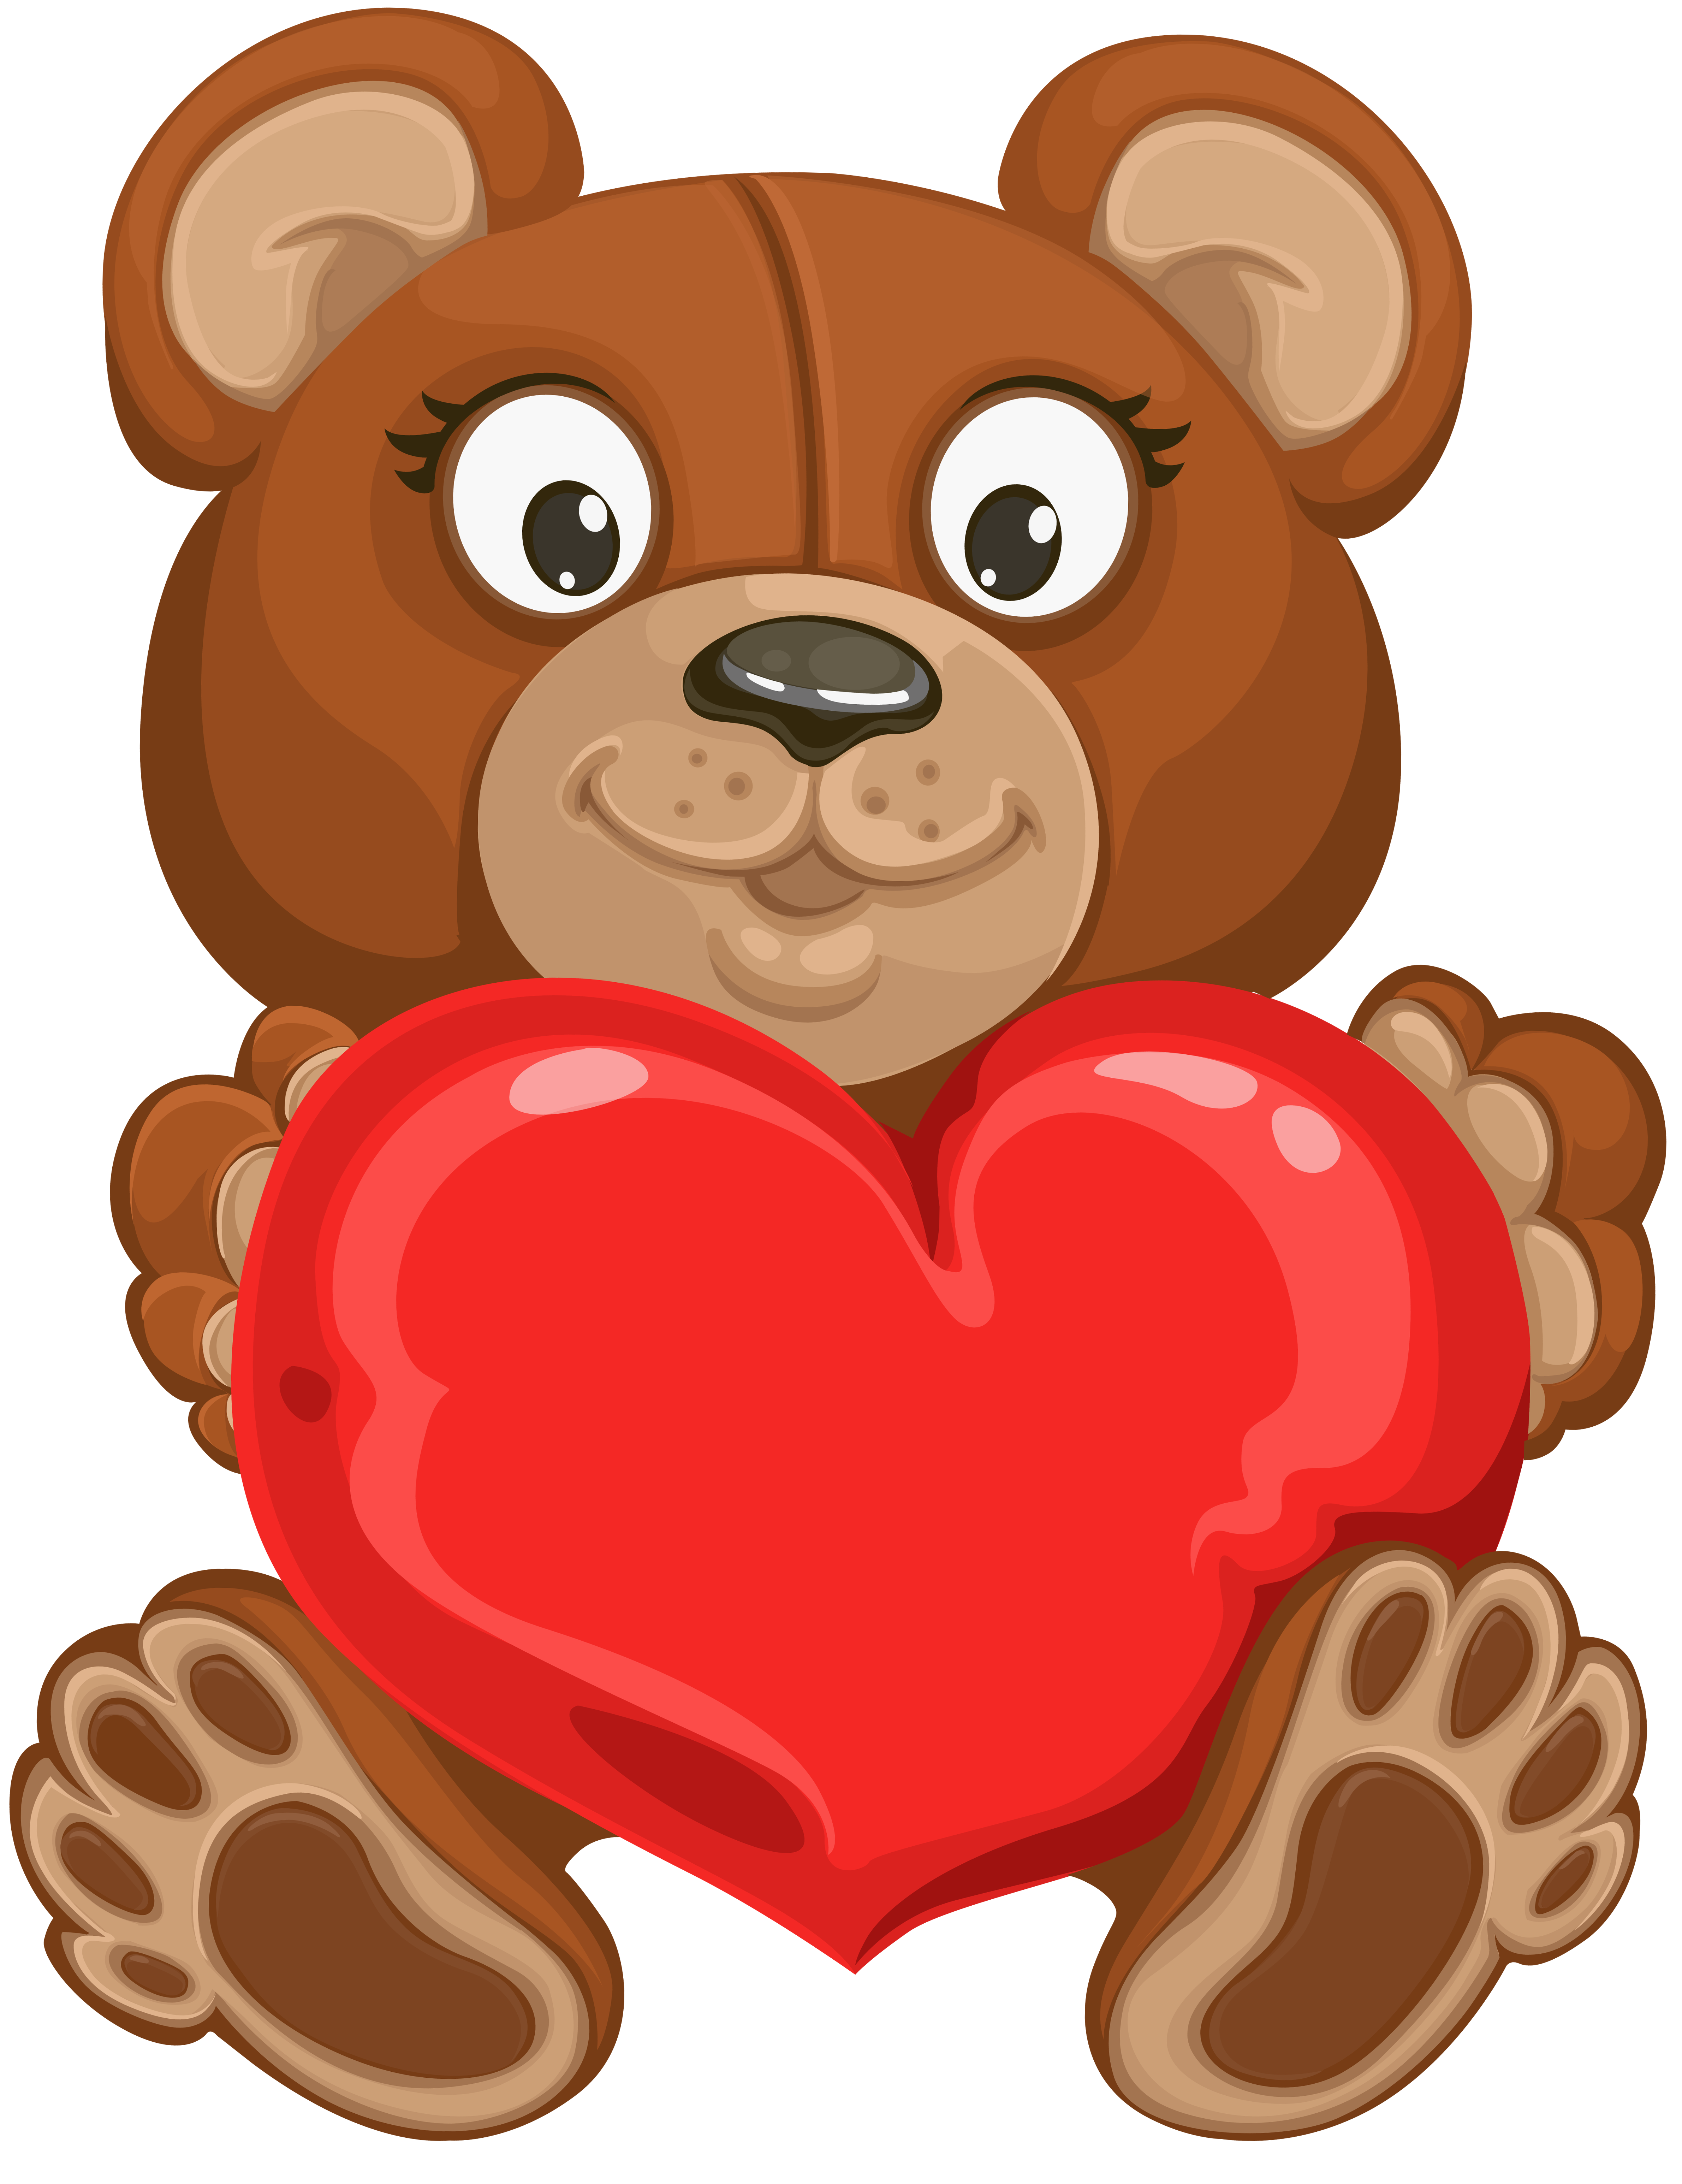 Teddy clipart transparent PNG full with Teddy Image